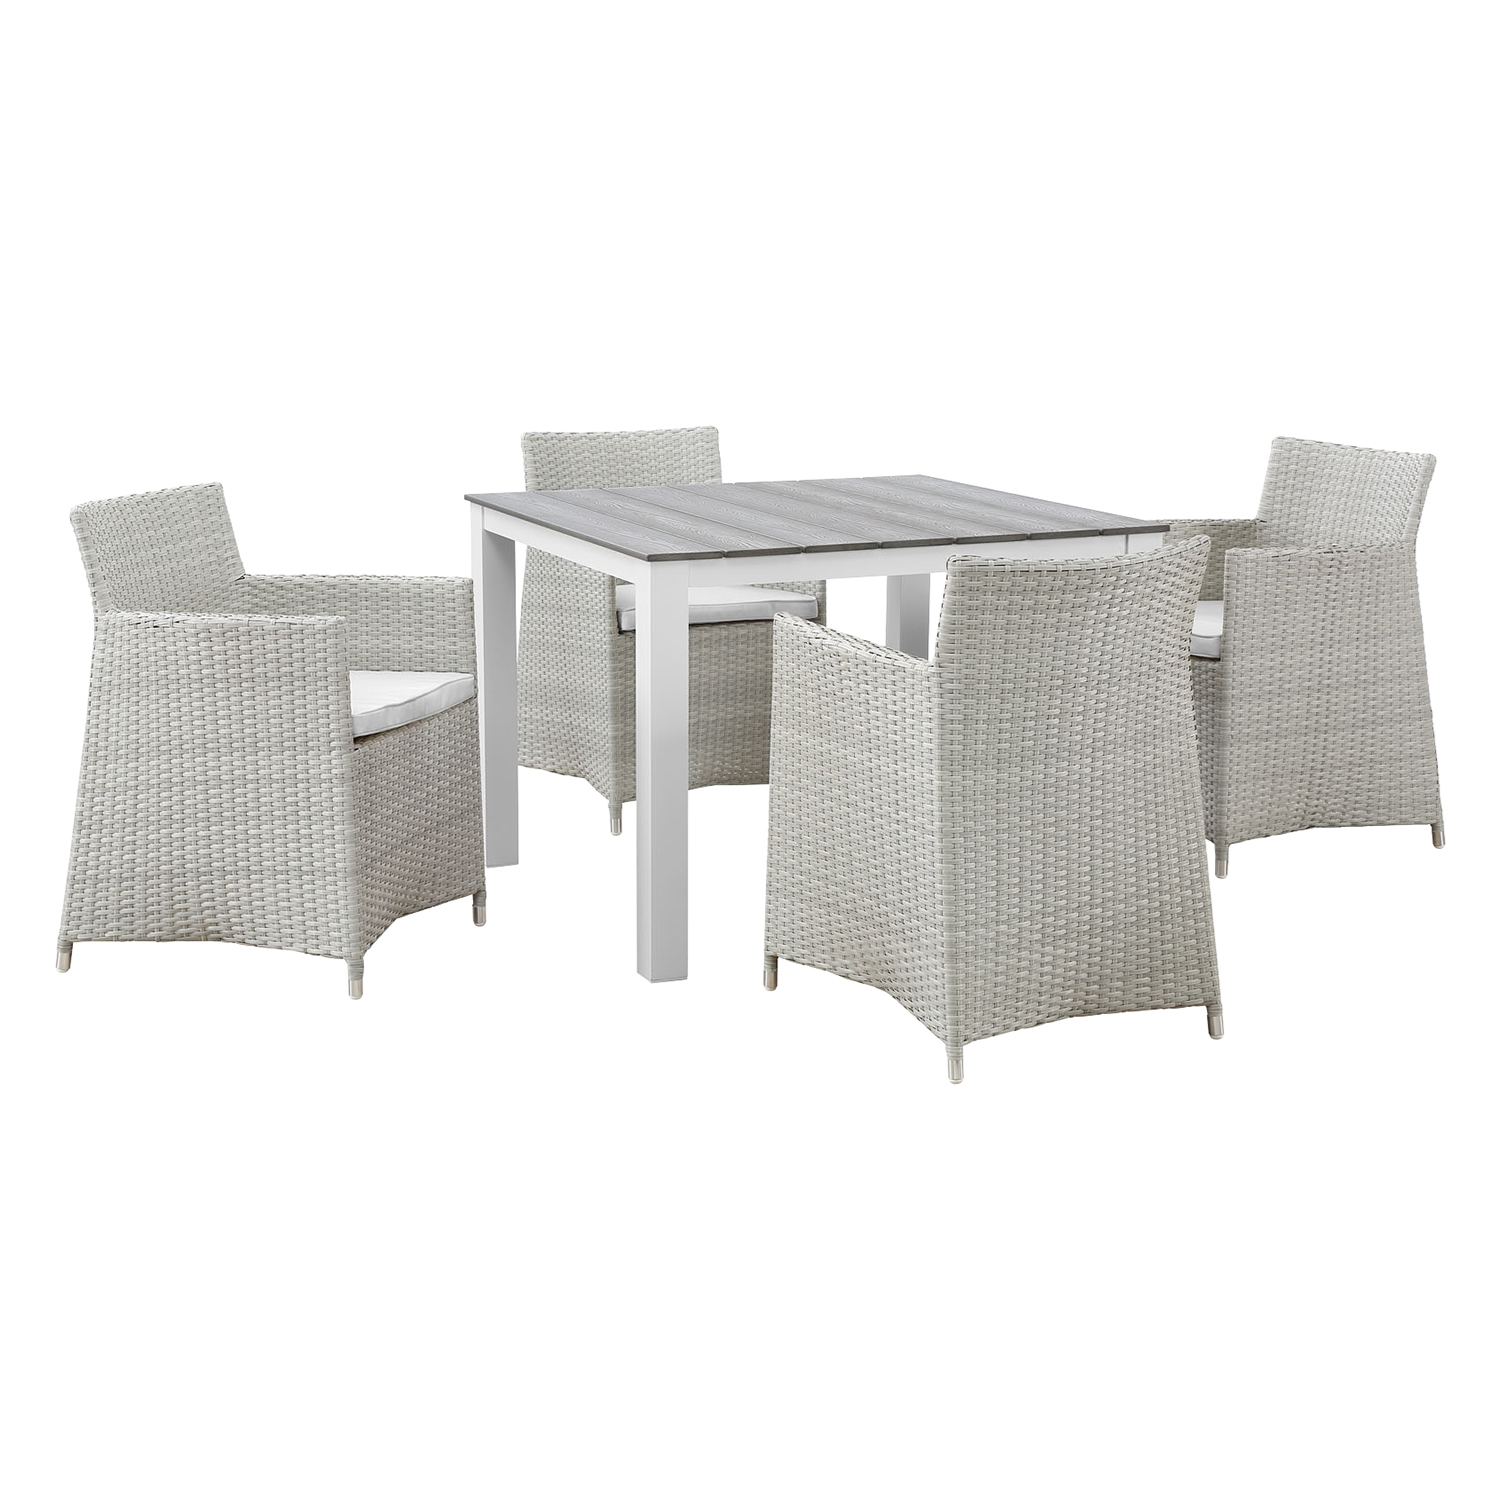 "Junction 5 Pieces 40"" Outdoor Patio Set - Gray Frame, White Cushion - EEI-1744-GRY-WHI-SET"